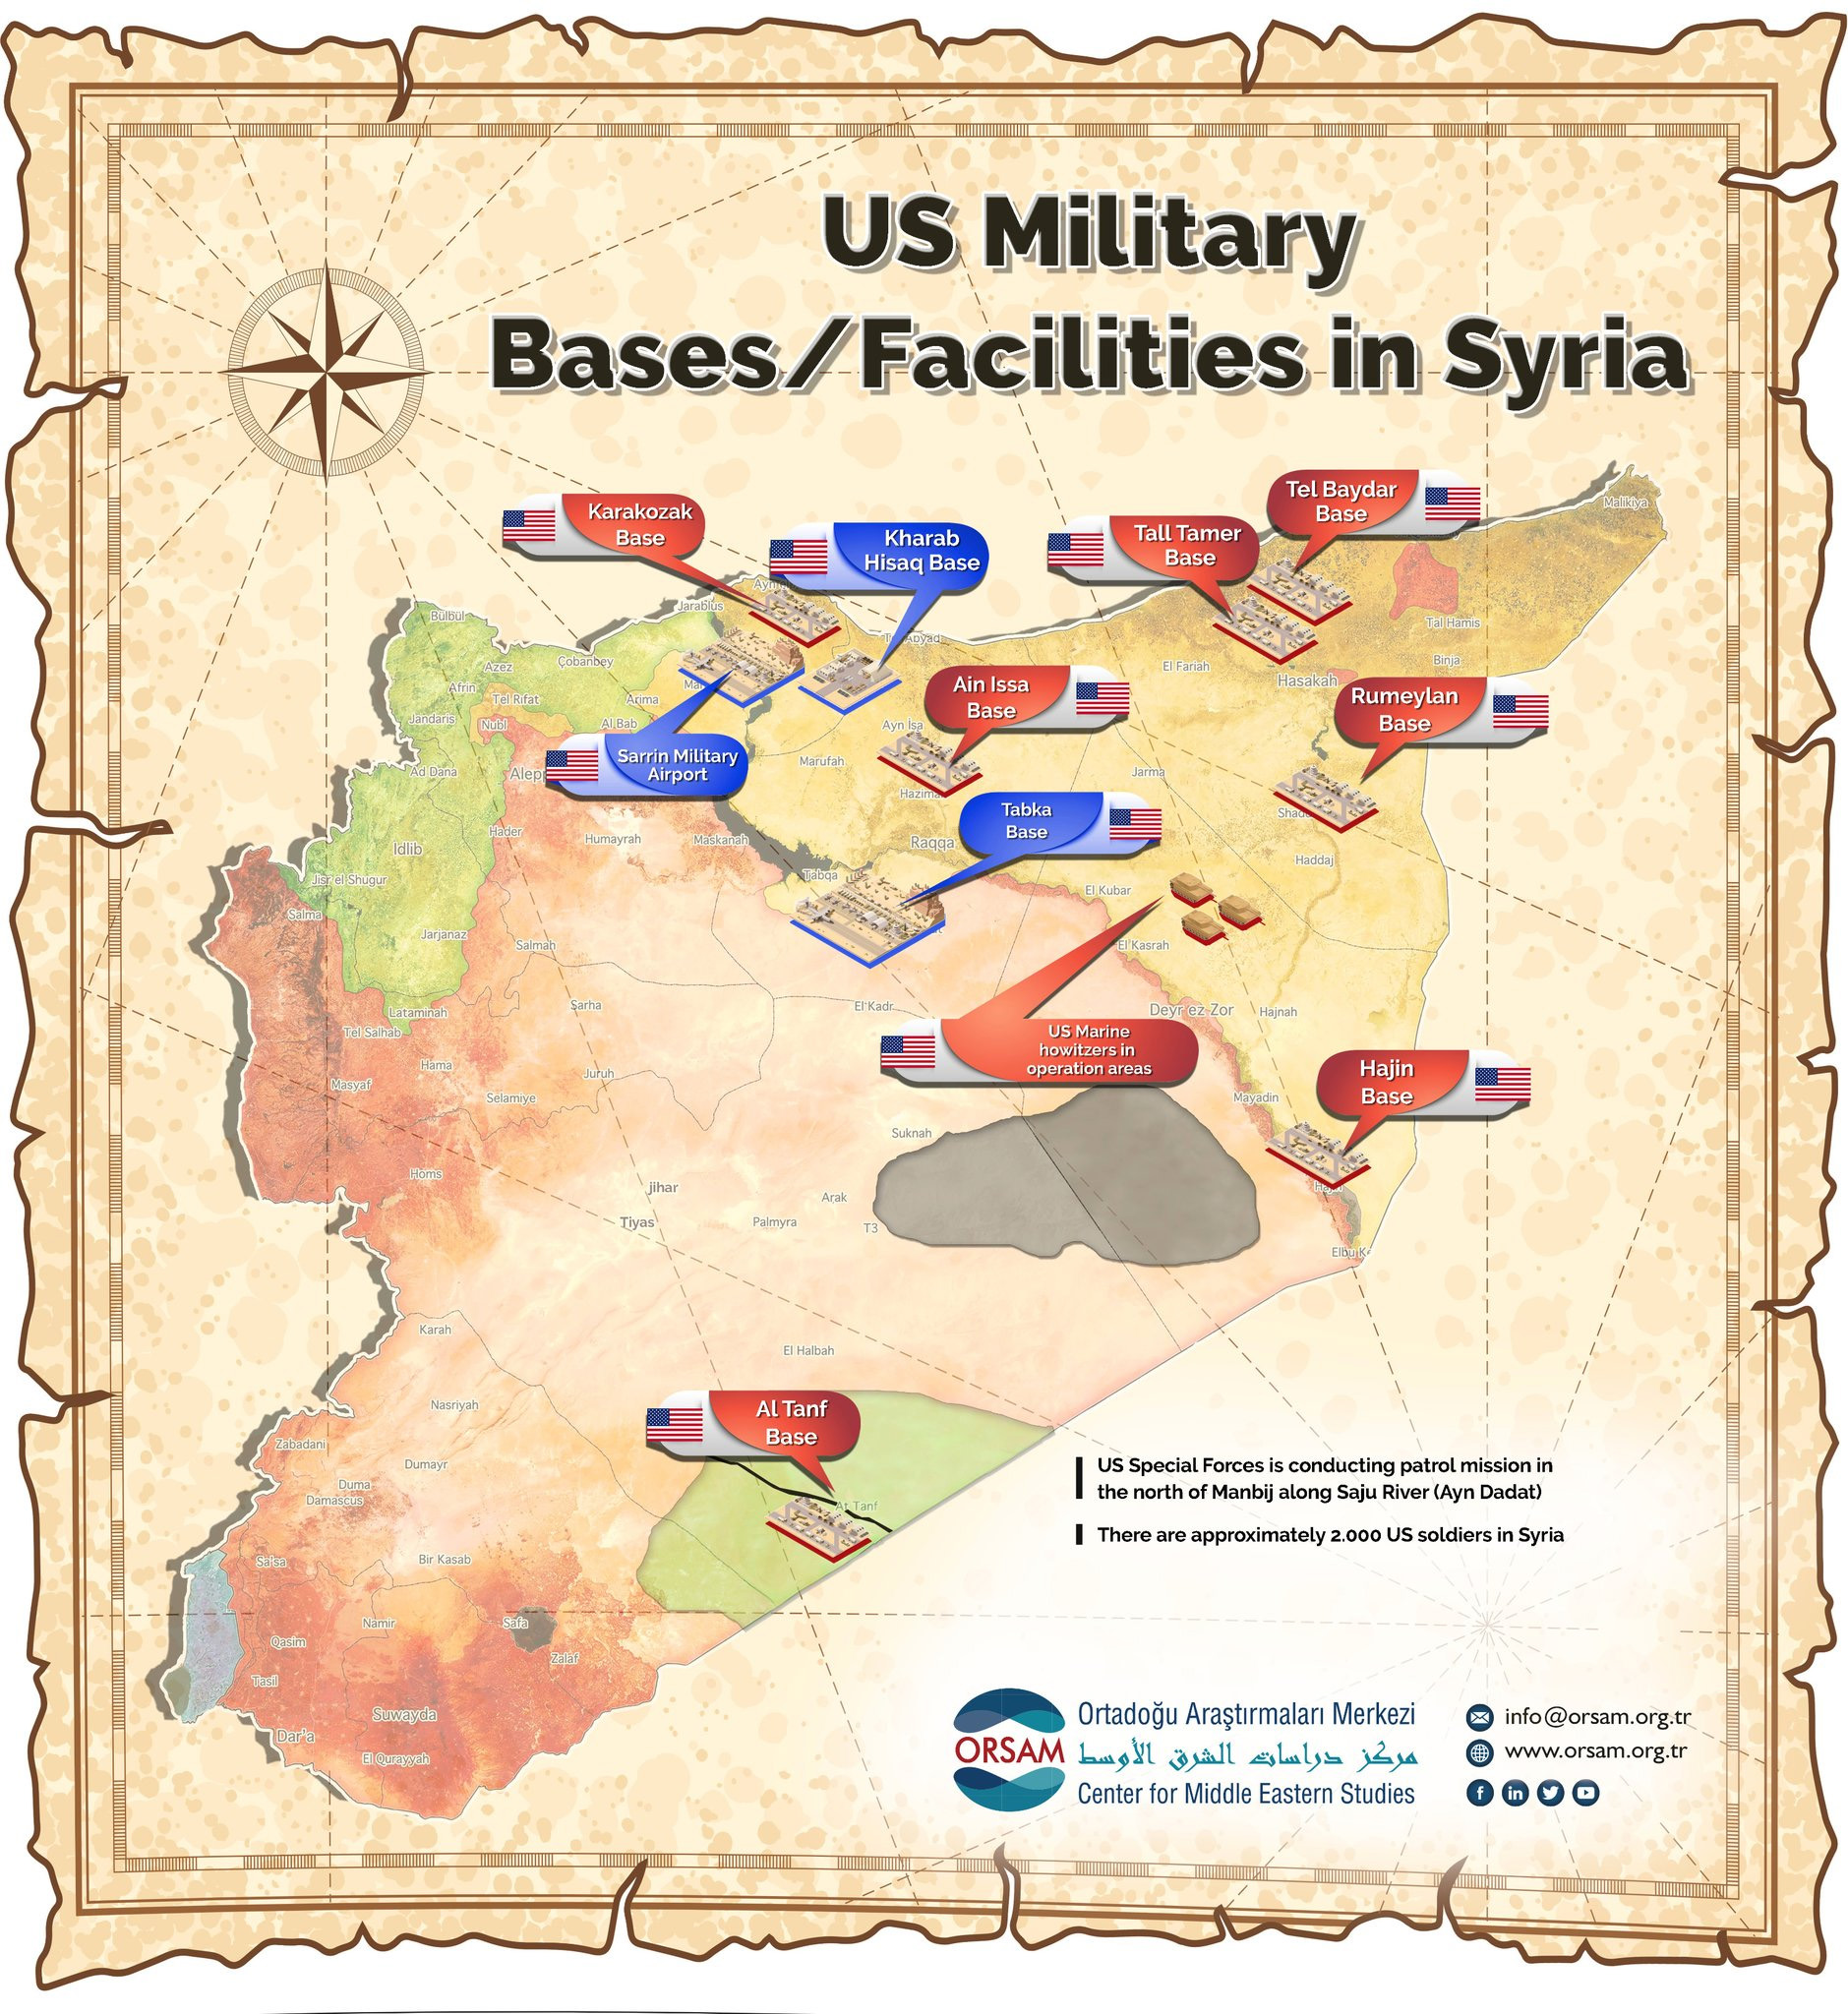 US Military Bases/Facilities in Syria